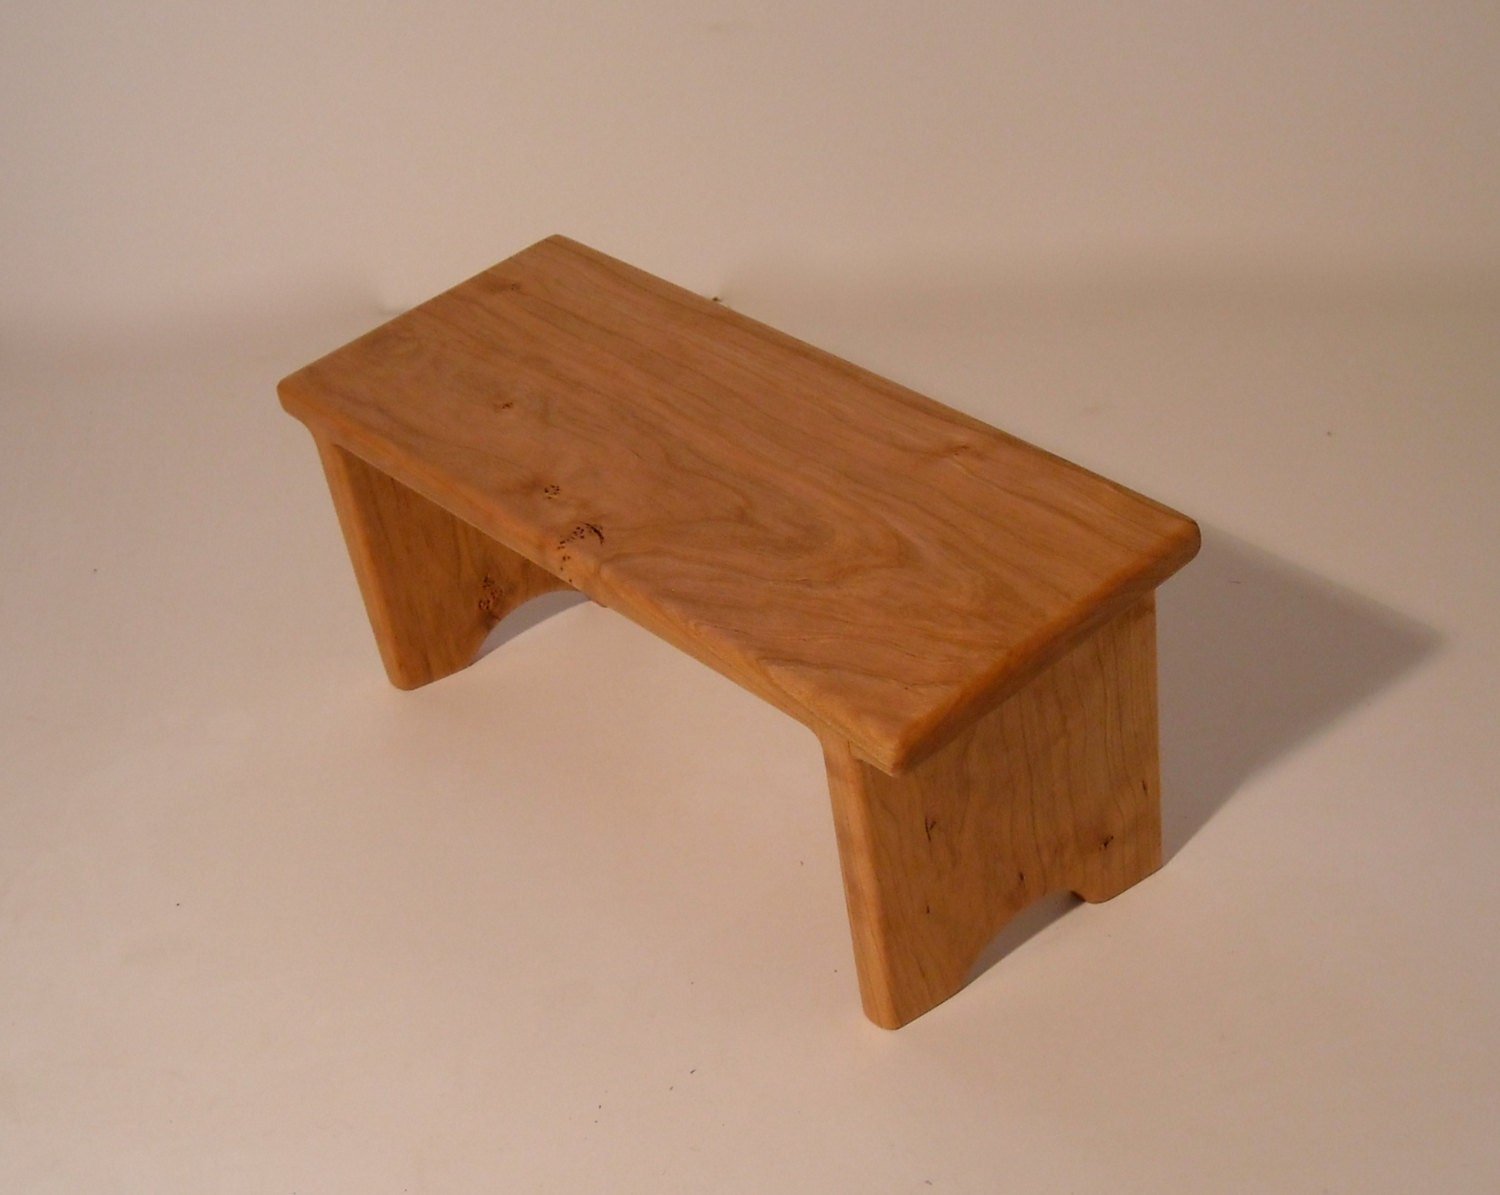 Kneeling Meditation Bench Hand Crafted Out Of Cherry Wood